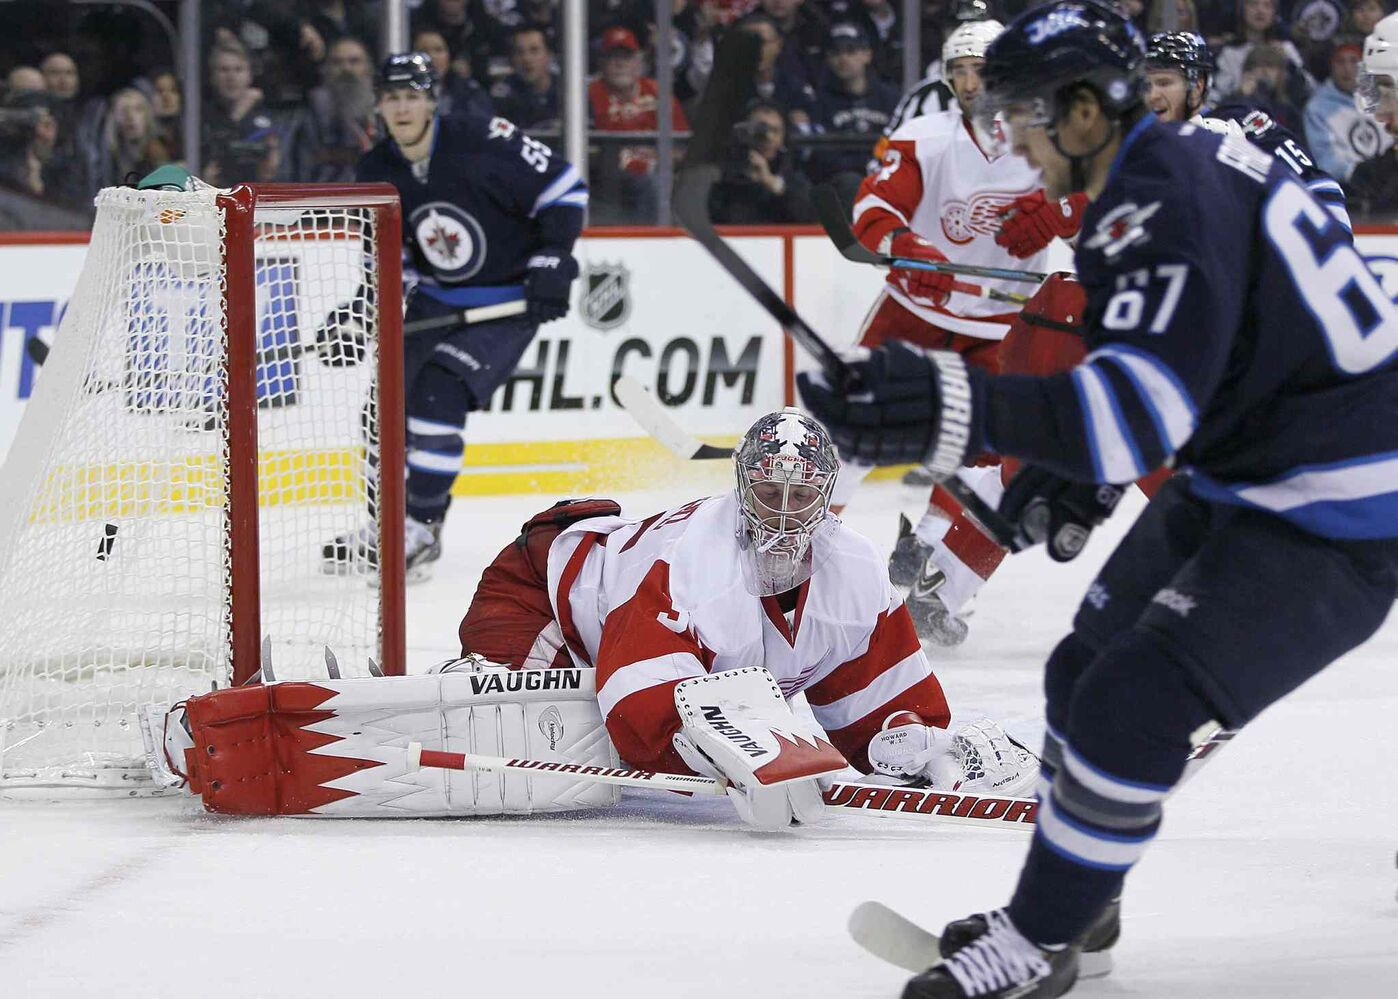 Winnipeg Jets forward Michael Frolik scores on Detroit Red Wings goaltender Jimmy Howard in the second period.